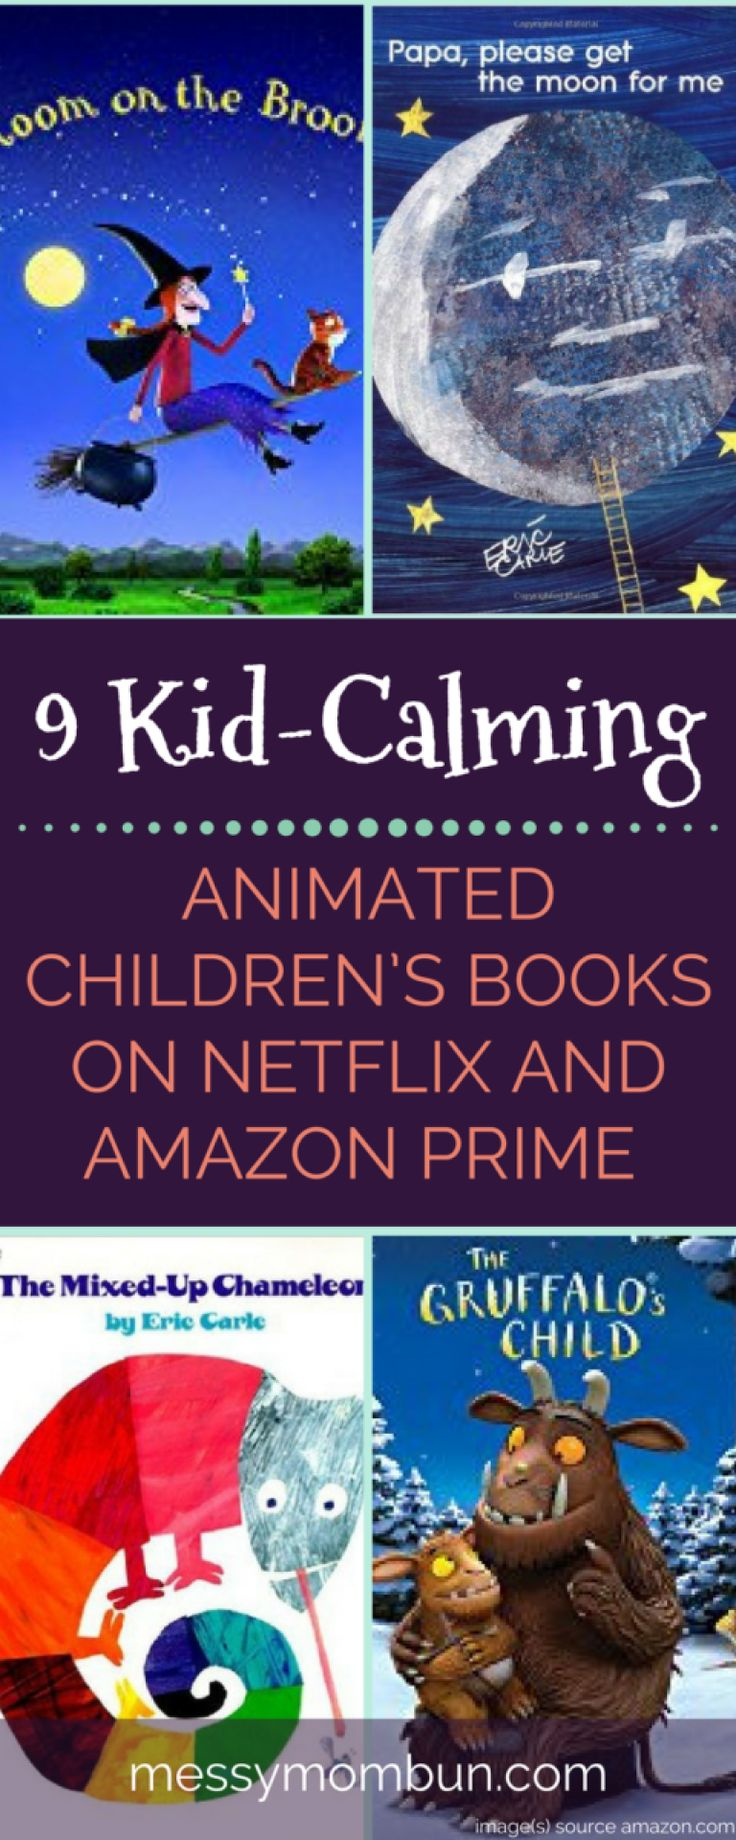 354 best images about books for kids on pinterest board book